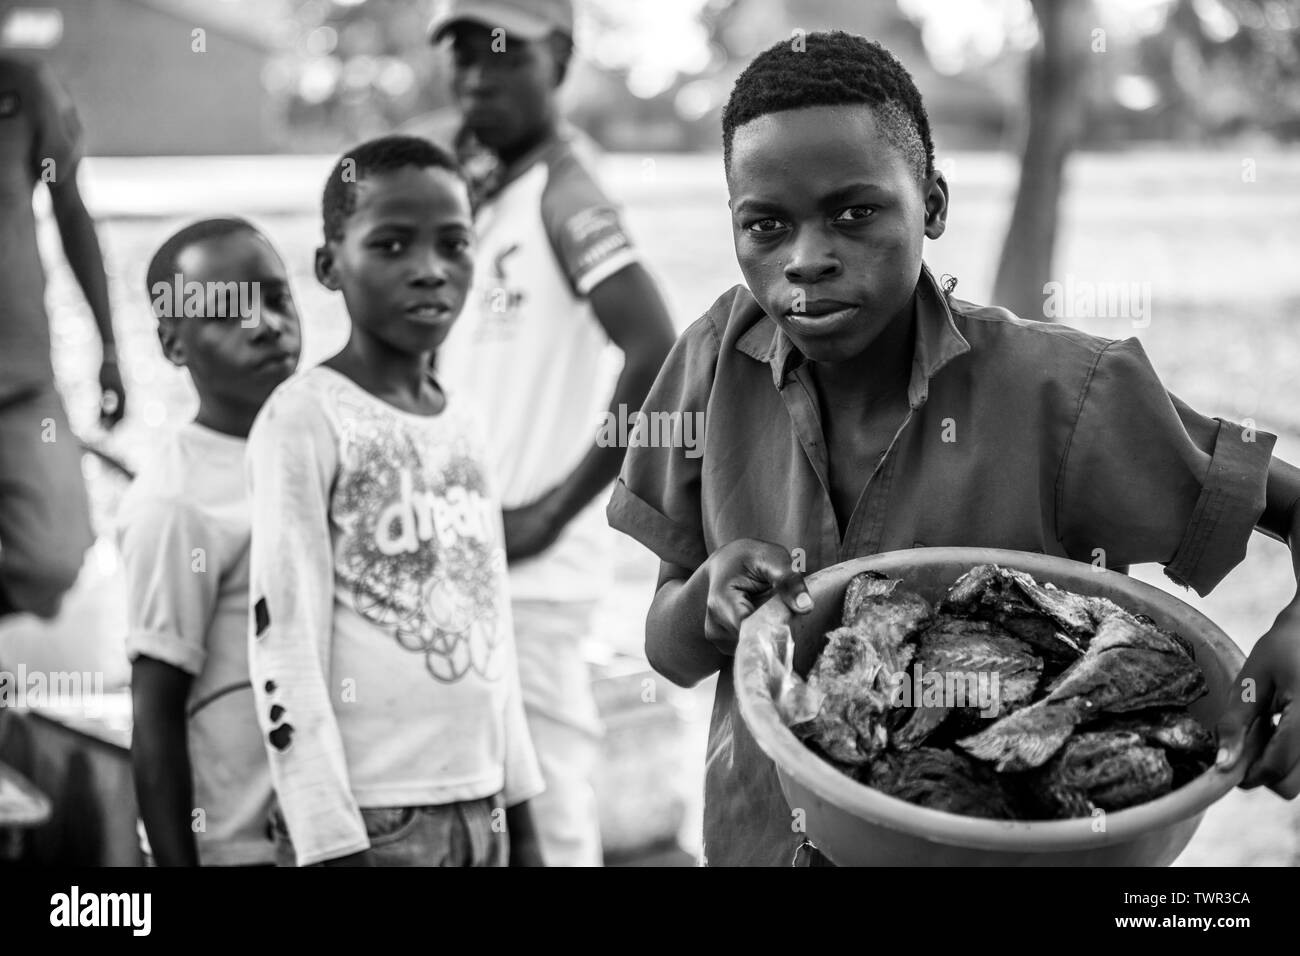 Child street vendors selling their Chambo fish - Stock Image